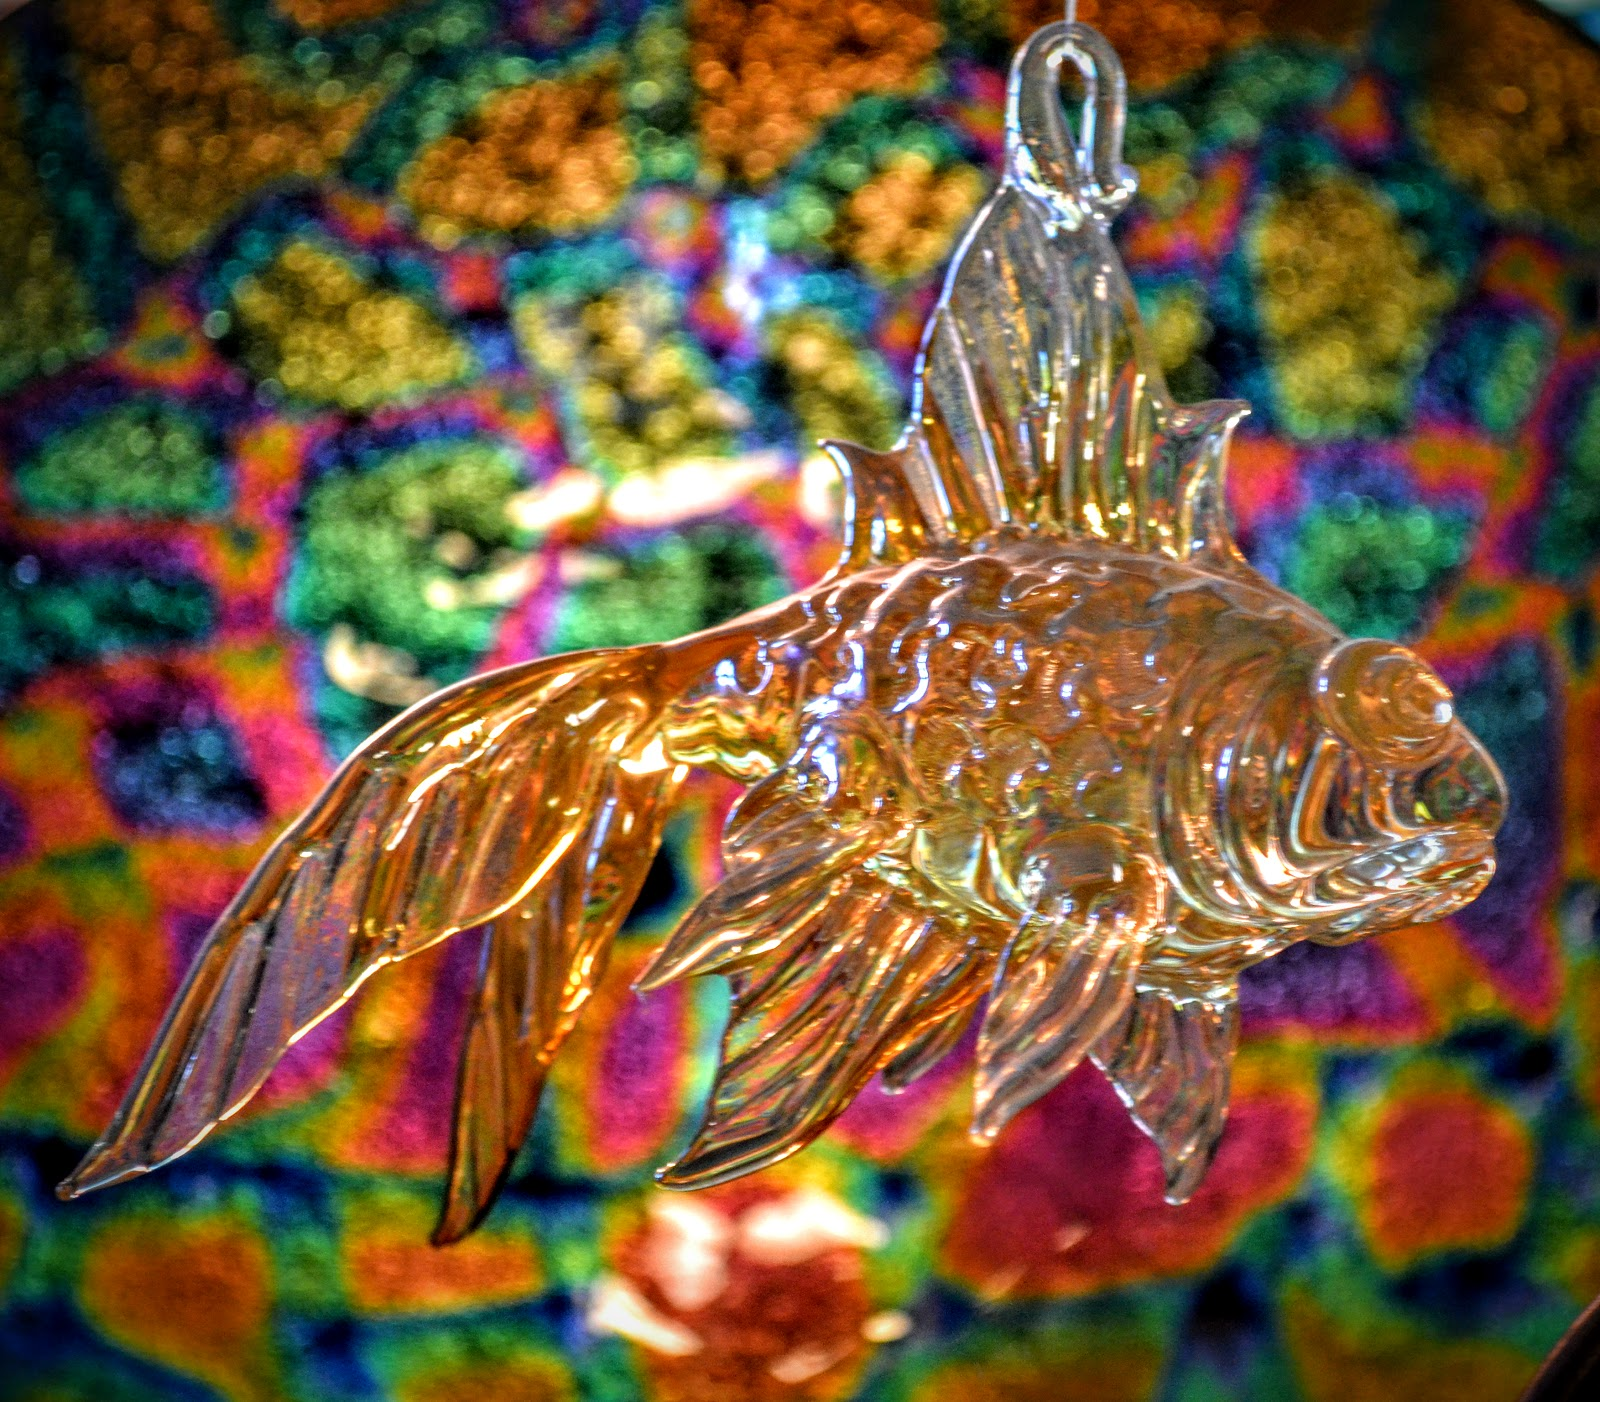 The Outlaw Gardener: Wednesday Vignette: How is a Colorful Fish Like ...